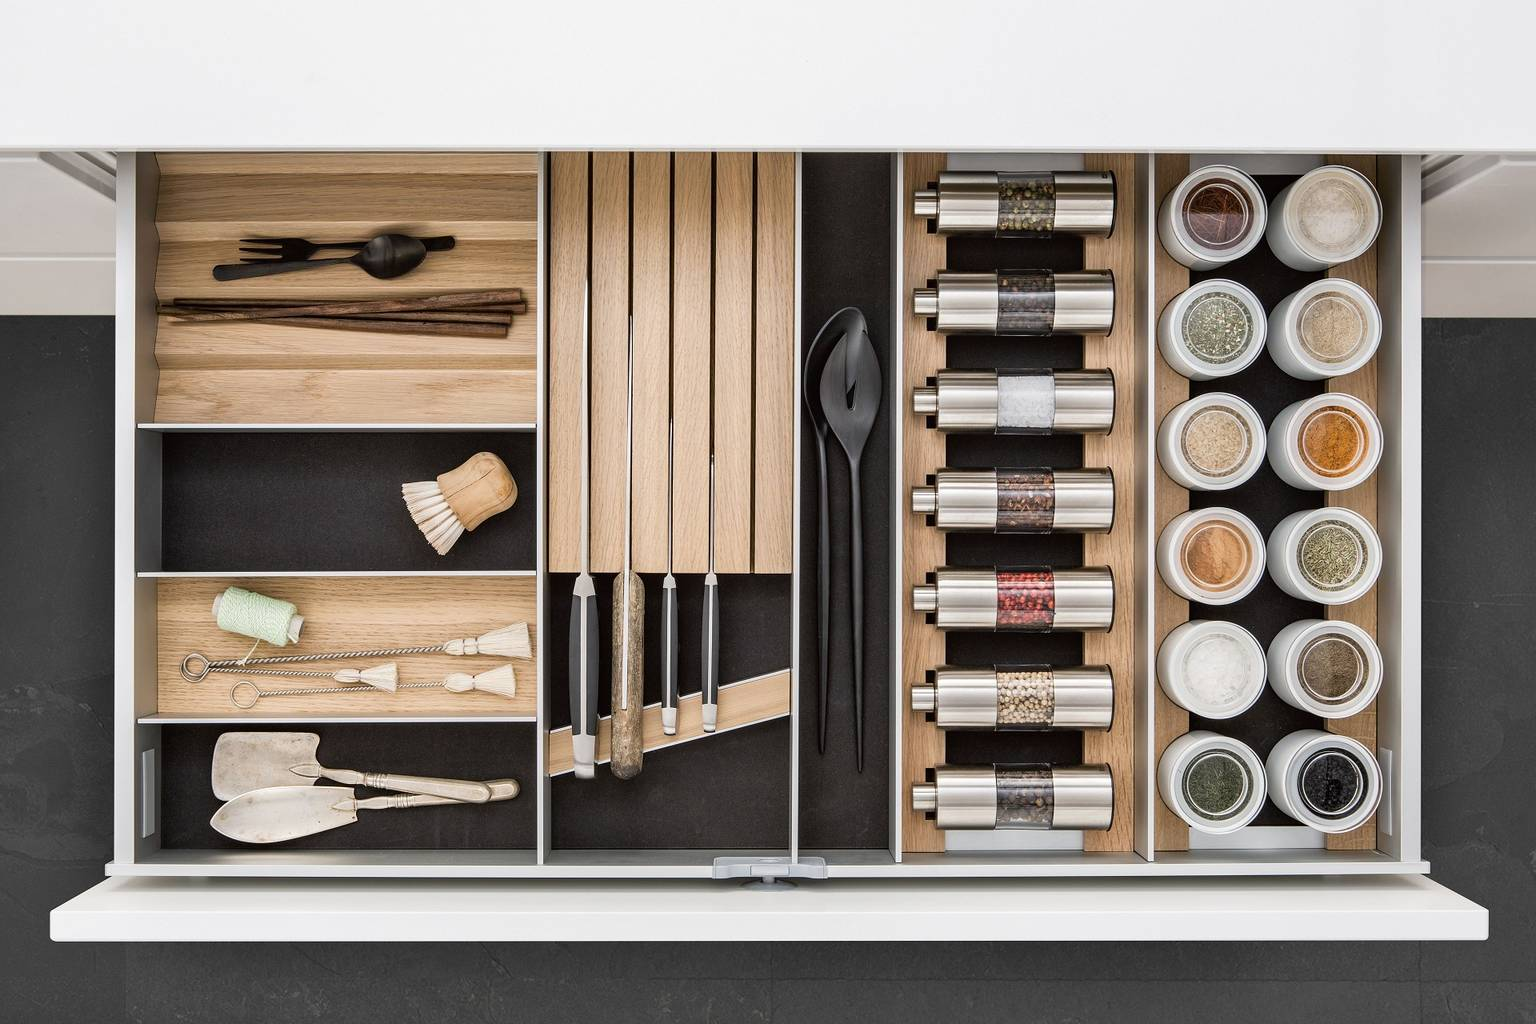 SieMatic aluminum kitchen interior accessories in light oak offer space for spice mills, porcelain jars and knives.